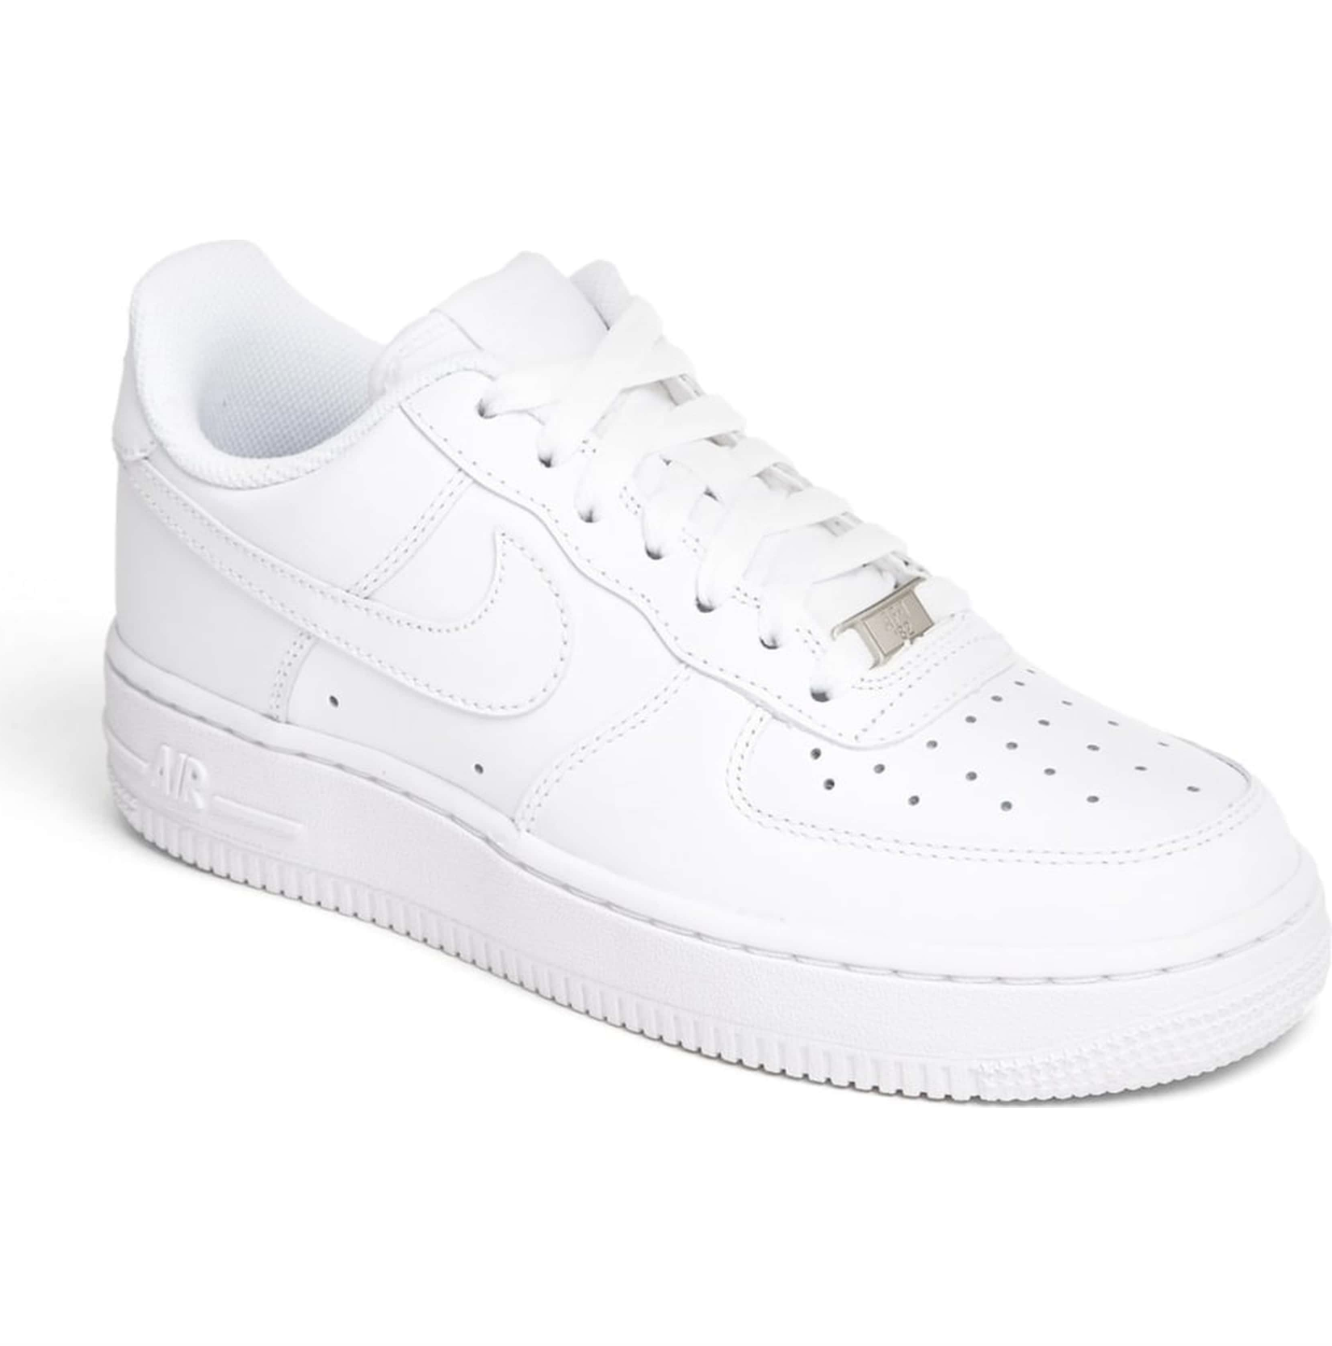 Nike Air Force 1 07 LE Low $90